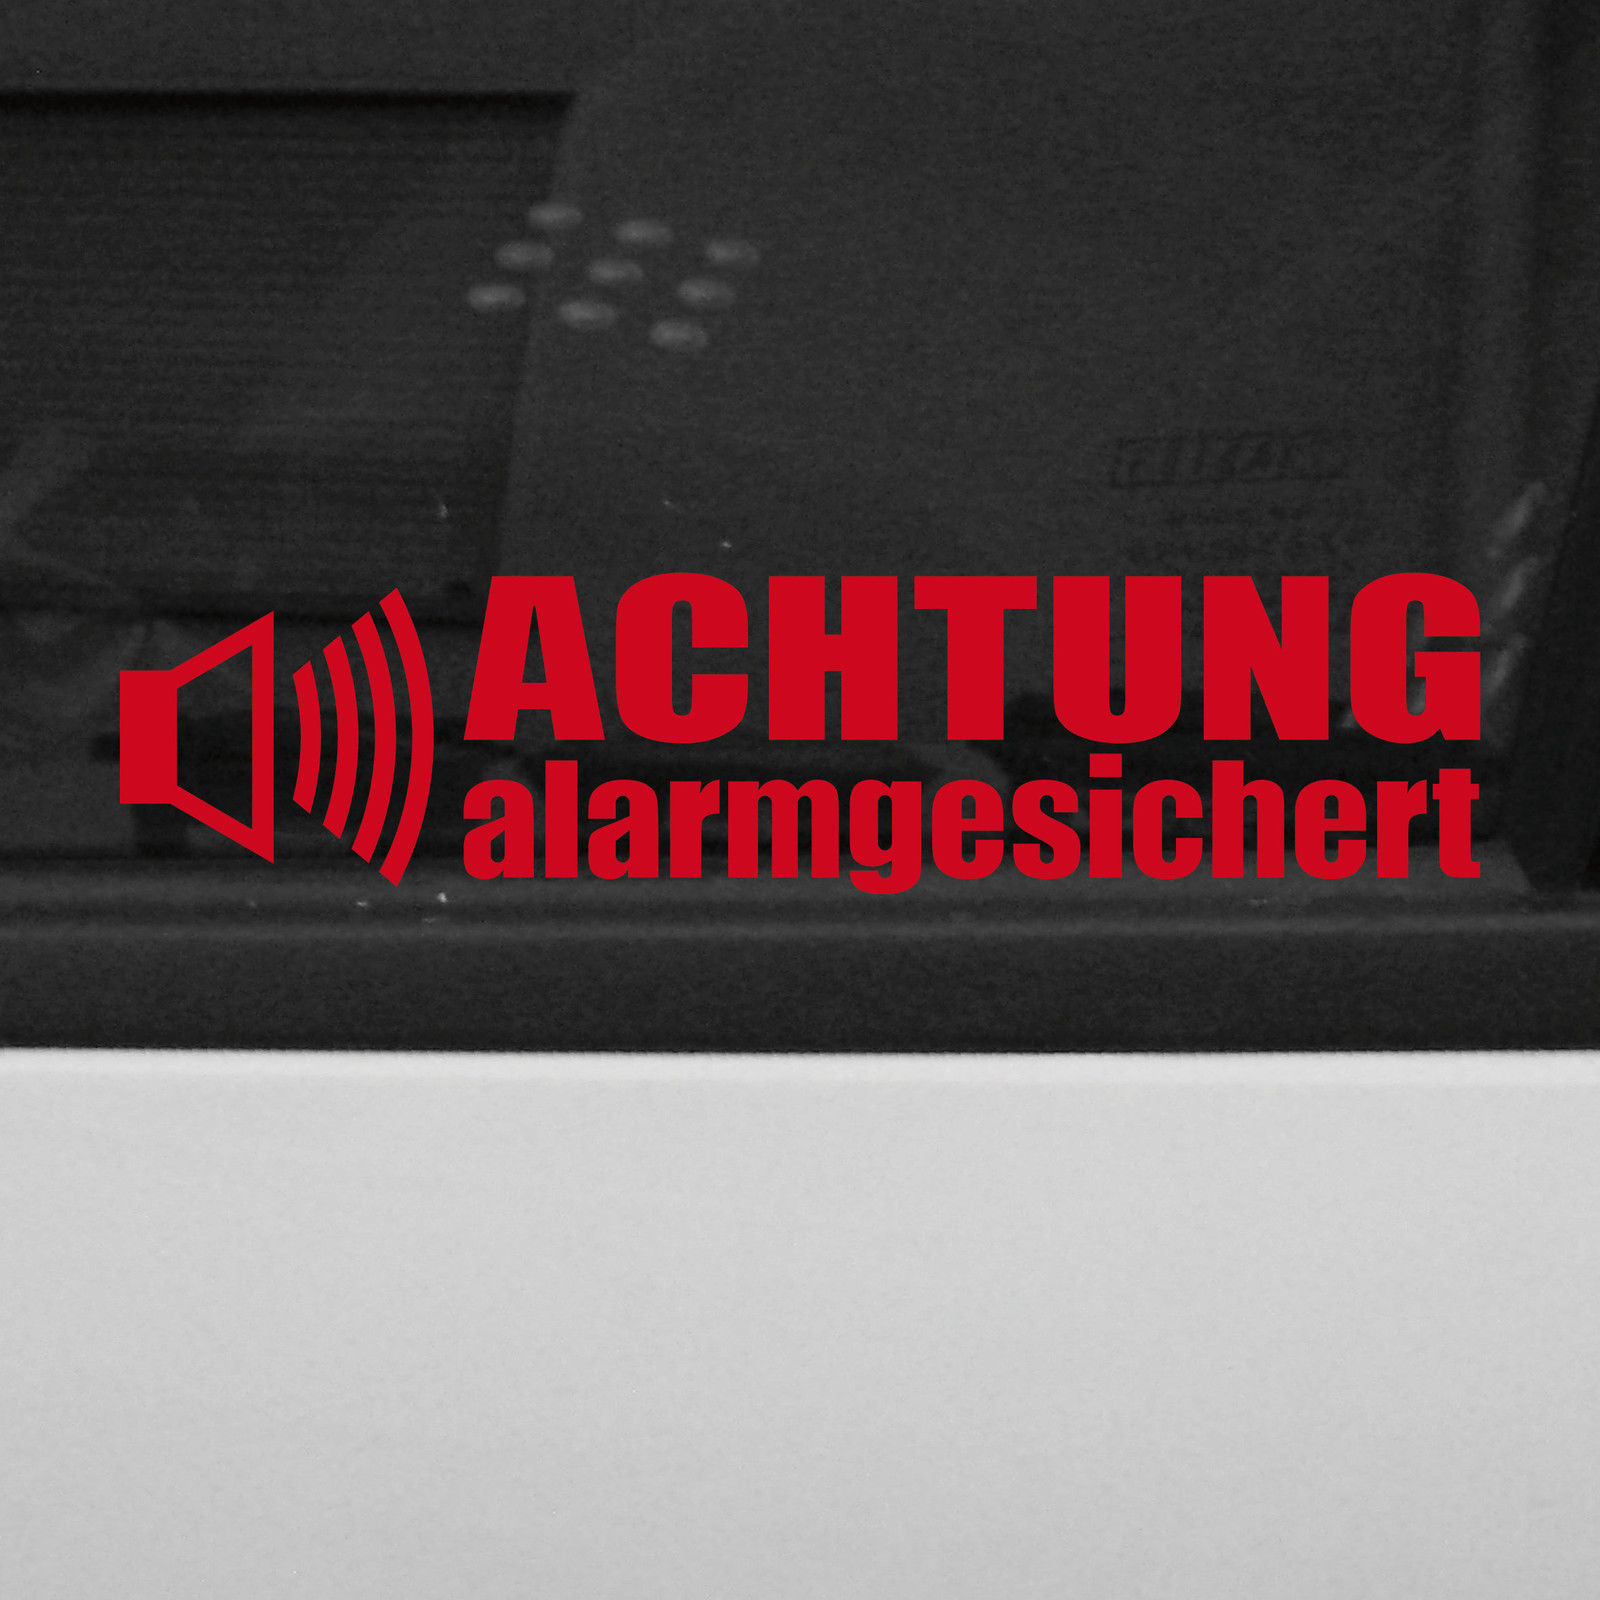 5 st ck achtung alarmgesichert aufkleber tattoo folie gespiegelt f r innenseite kaufen bei. Black Bedroom Furniture Sets. Home Design Ideas